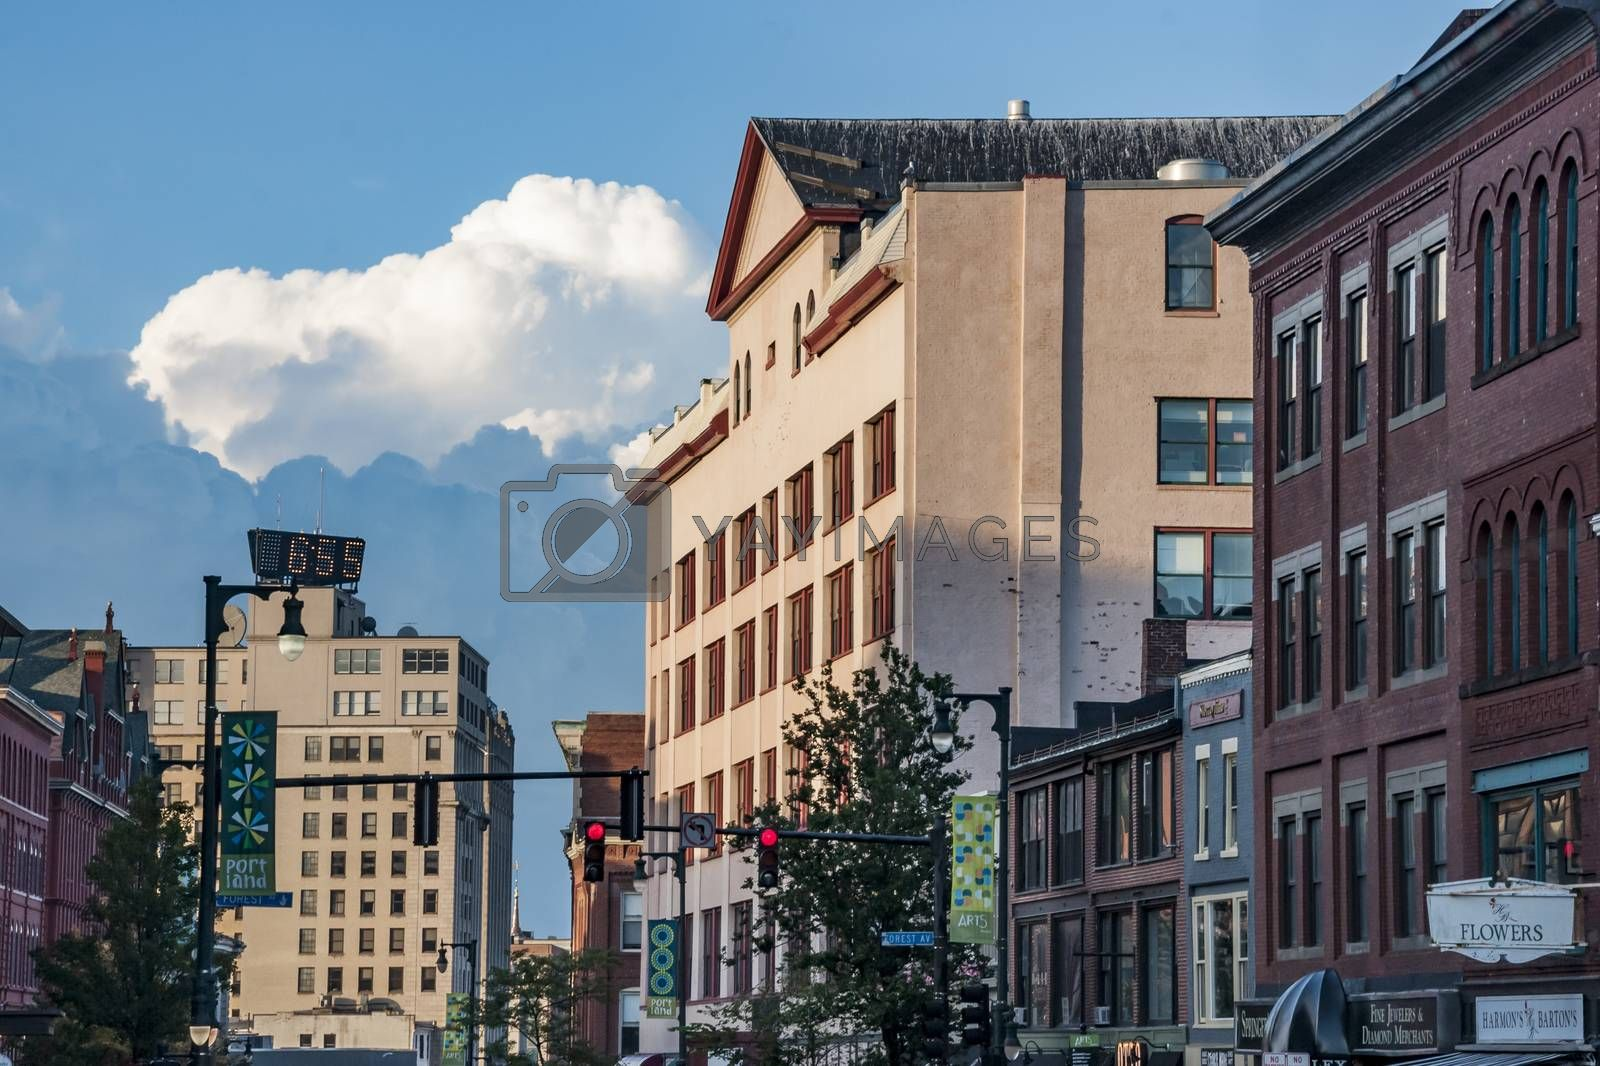 PORTLAN, ME - AUGUST 3, 2013: Old brick building in one of the main street on August 3, 2013 in Portland Maine, USA